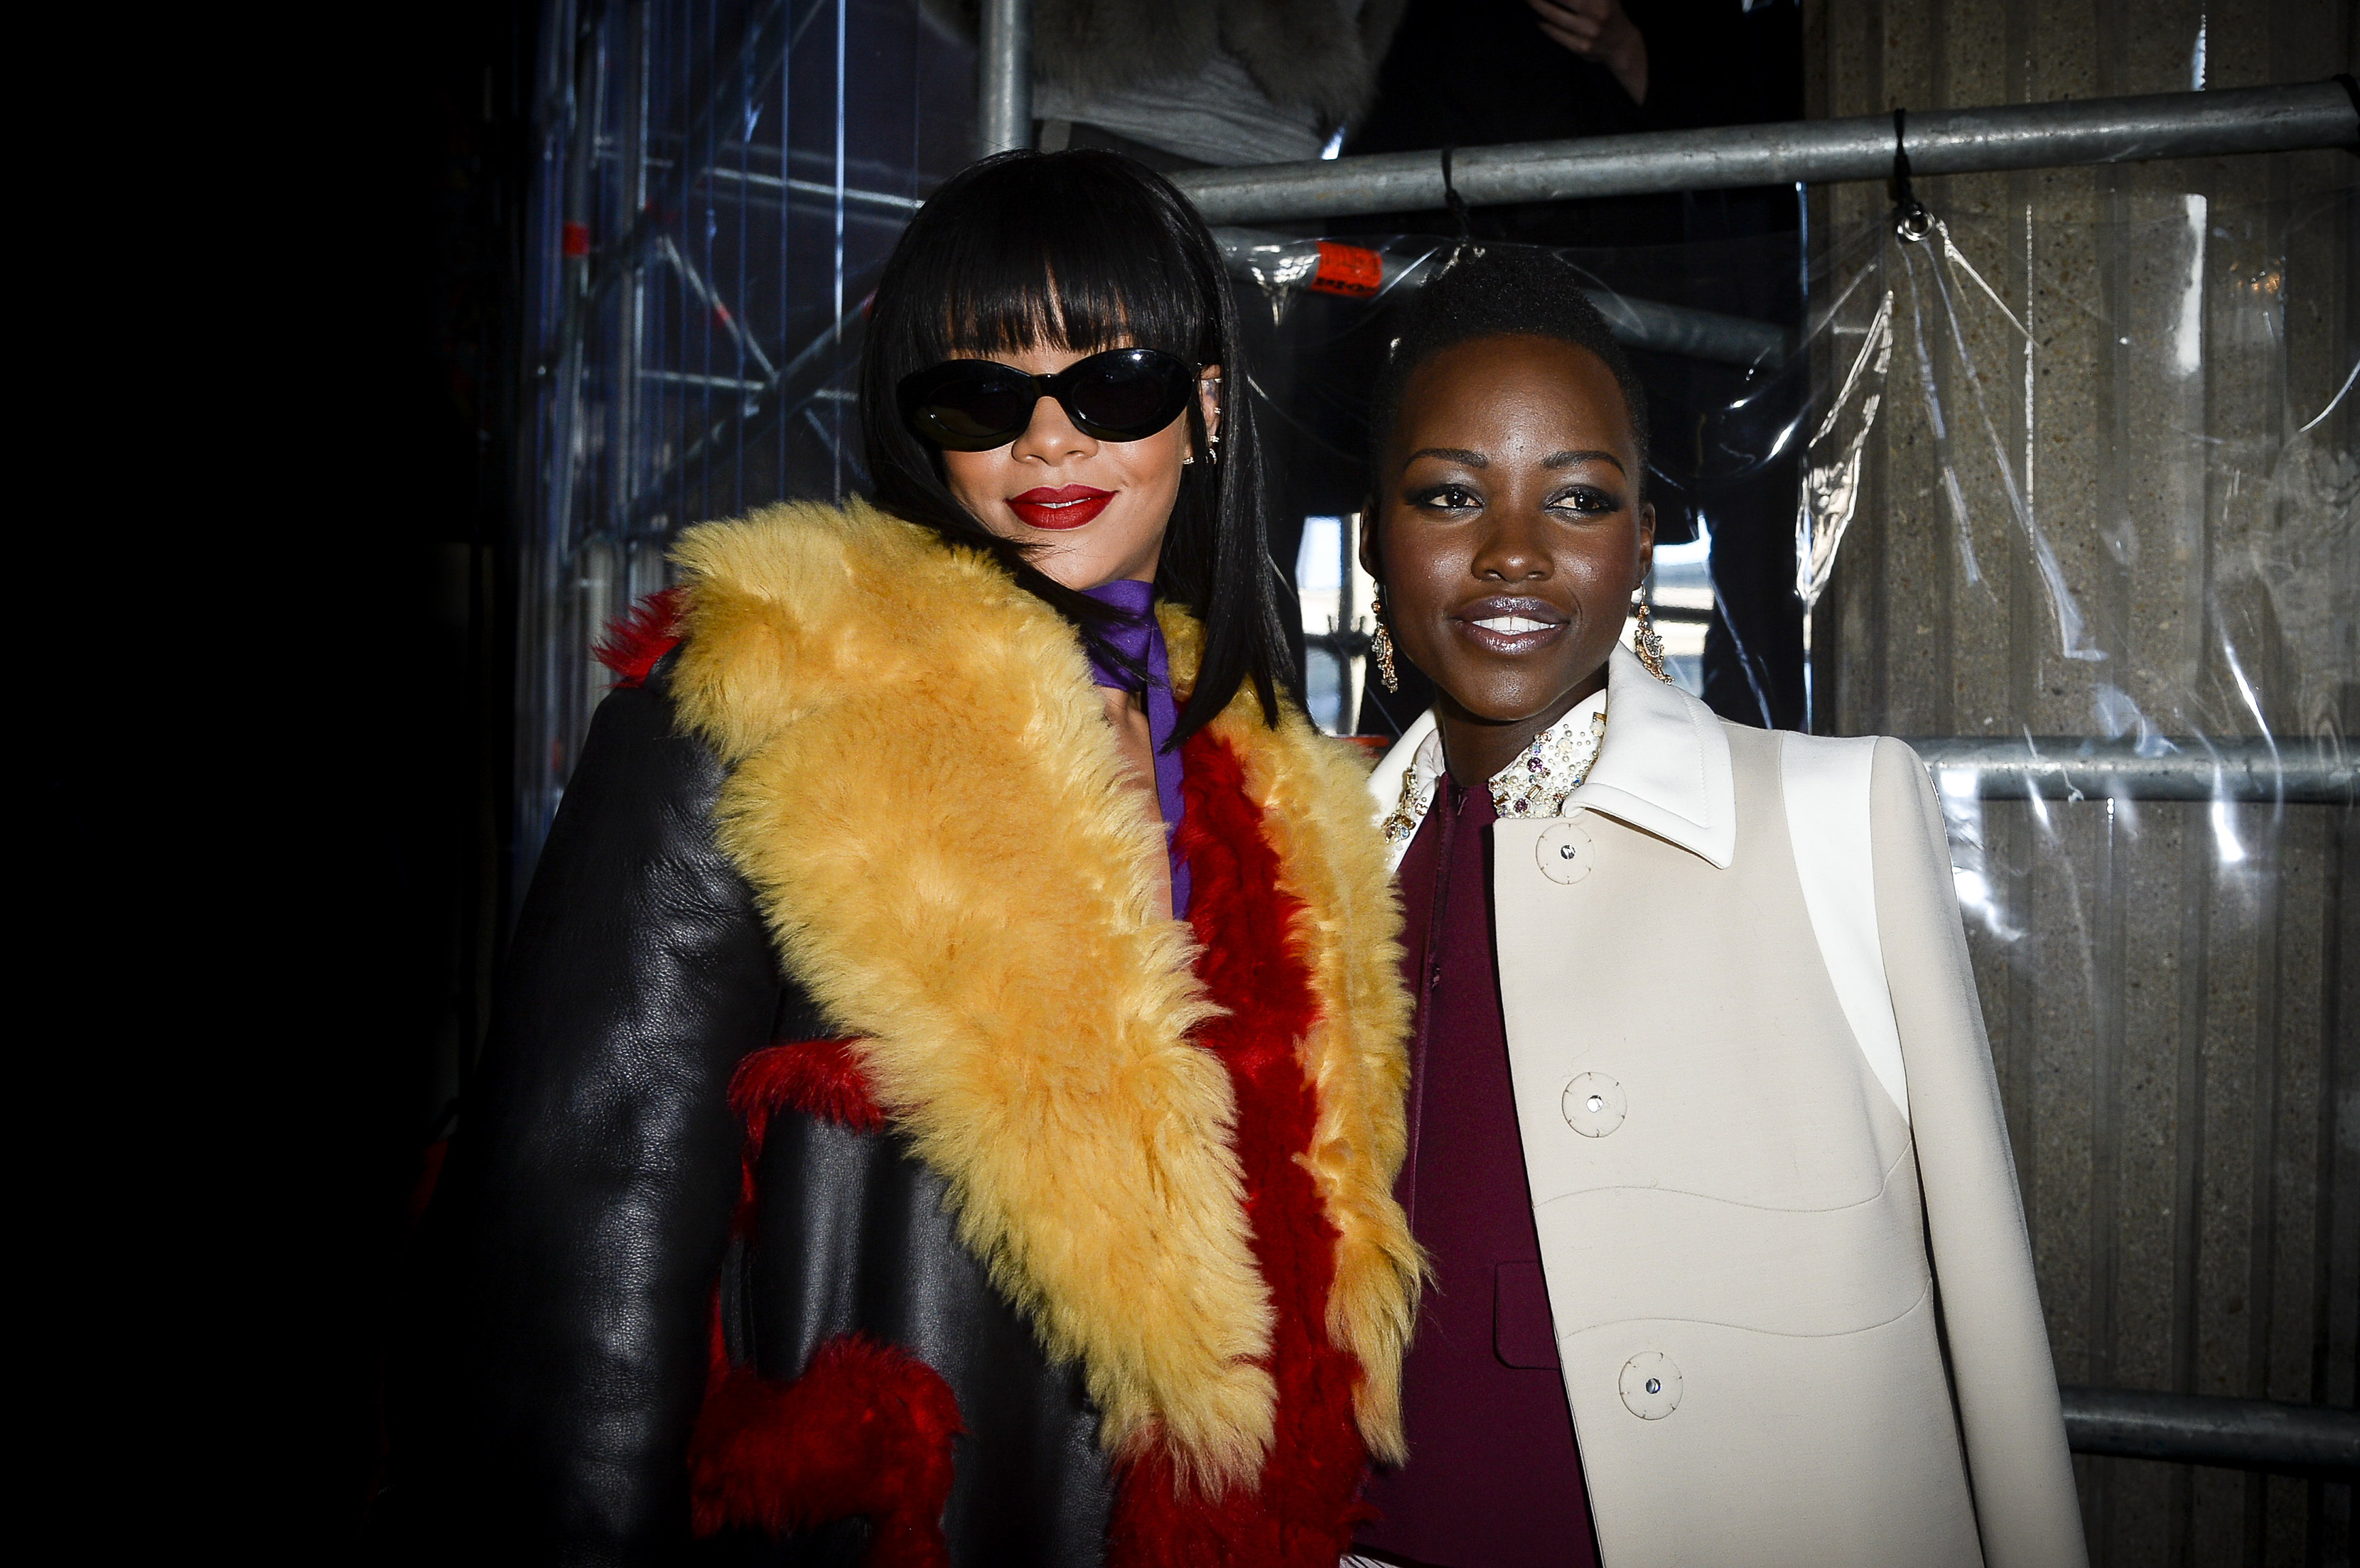 The internet wants Lupita Nyong'o and Rihanna to star in a movie based on this photo